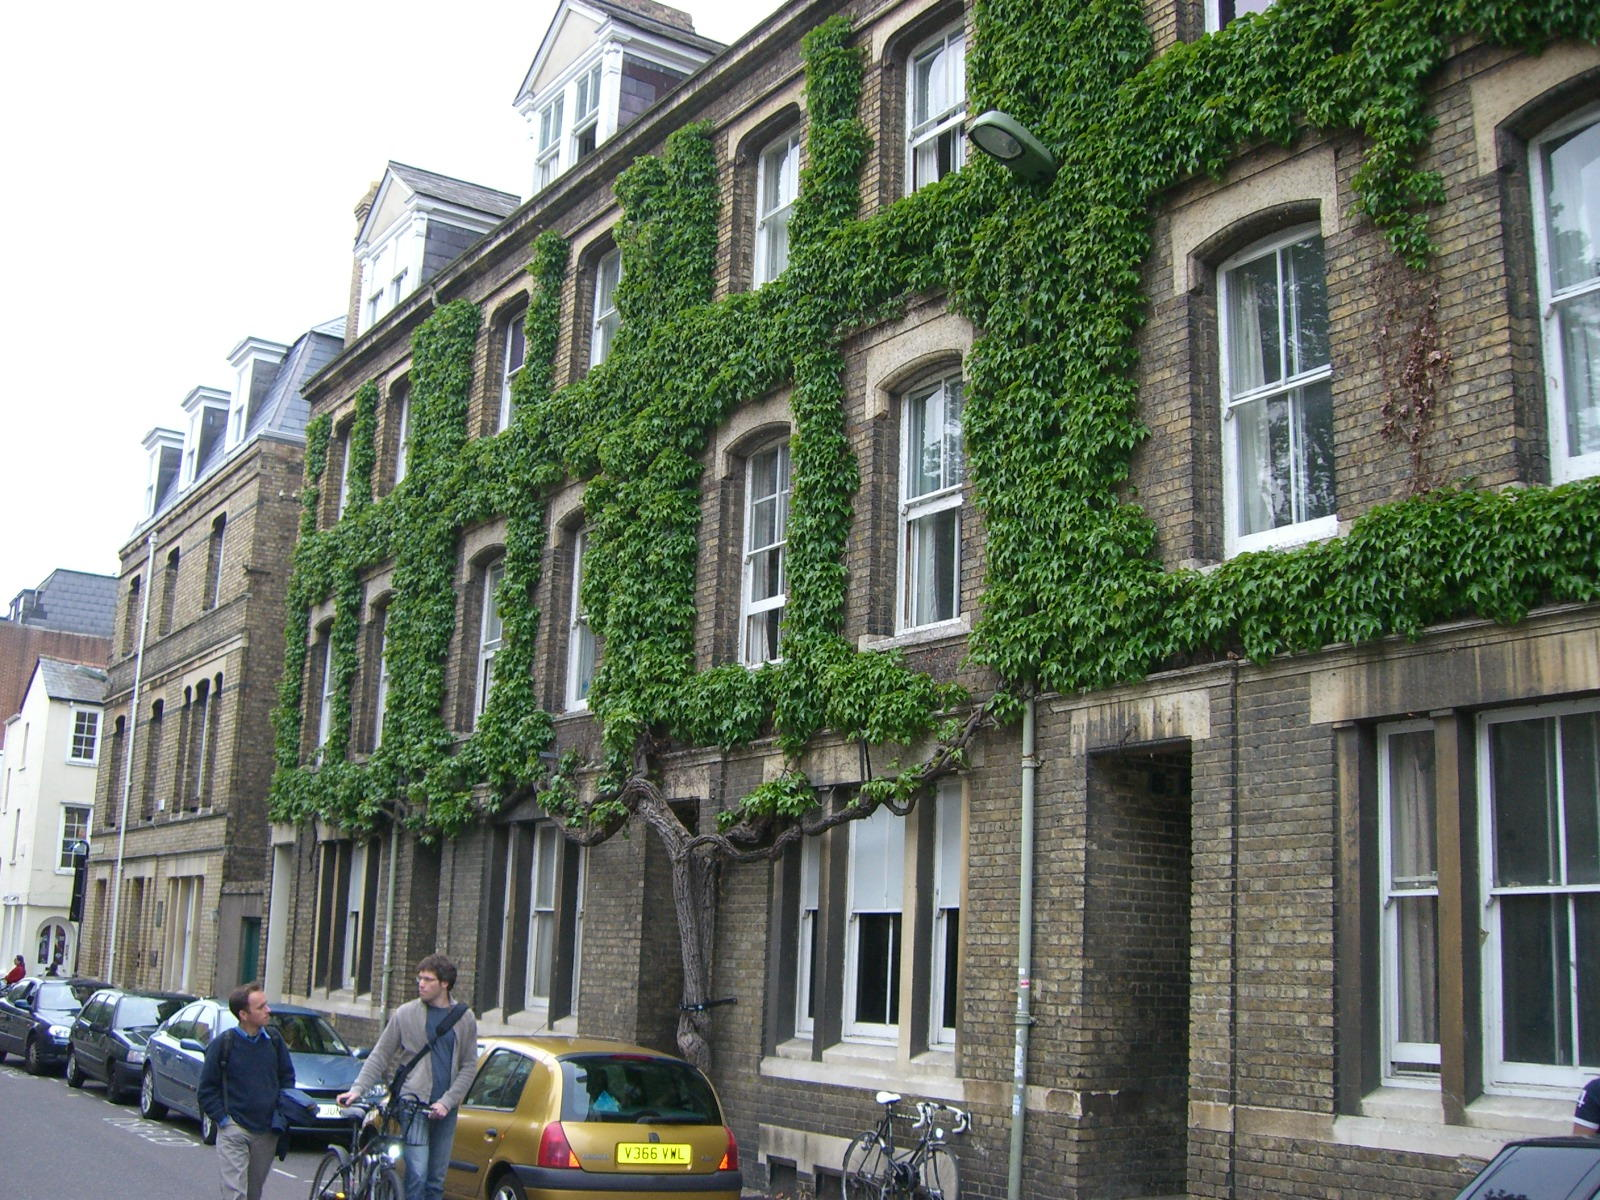 An Oxford trained vine growing on a building in England, UK.